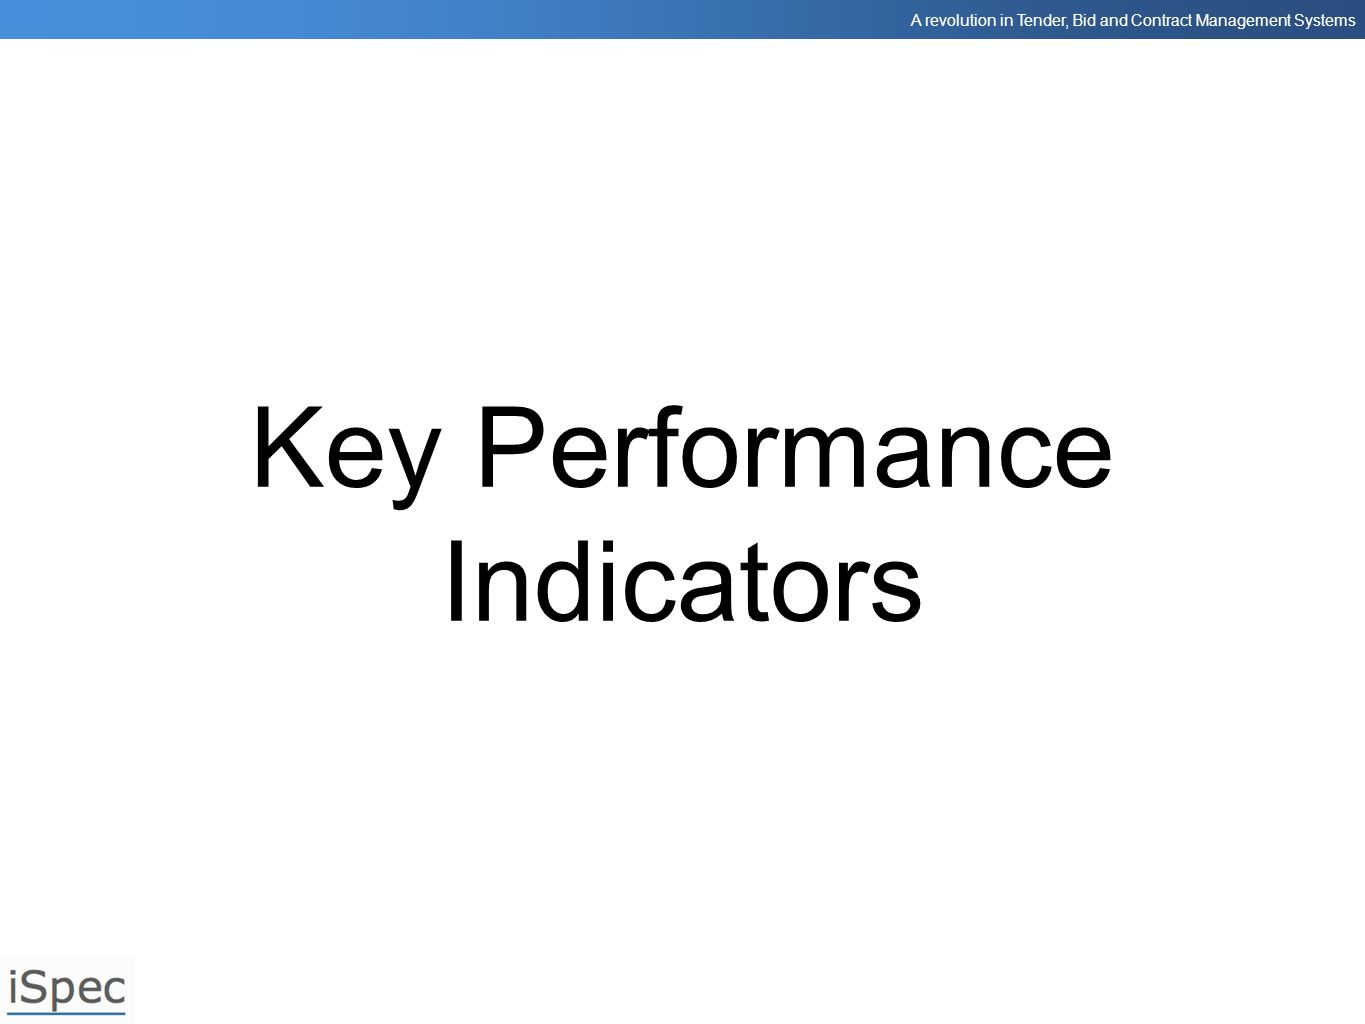 A revolution in Tender, Bid and Contract Management Systems Key Performance Indicators